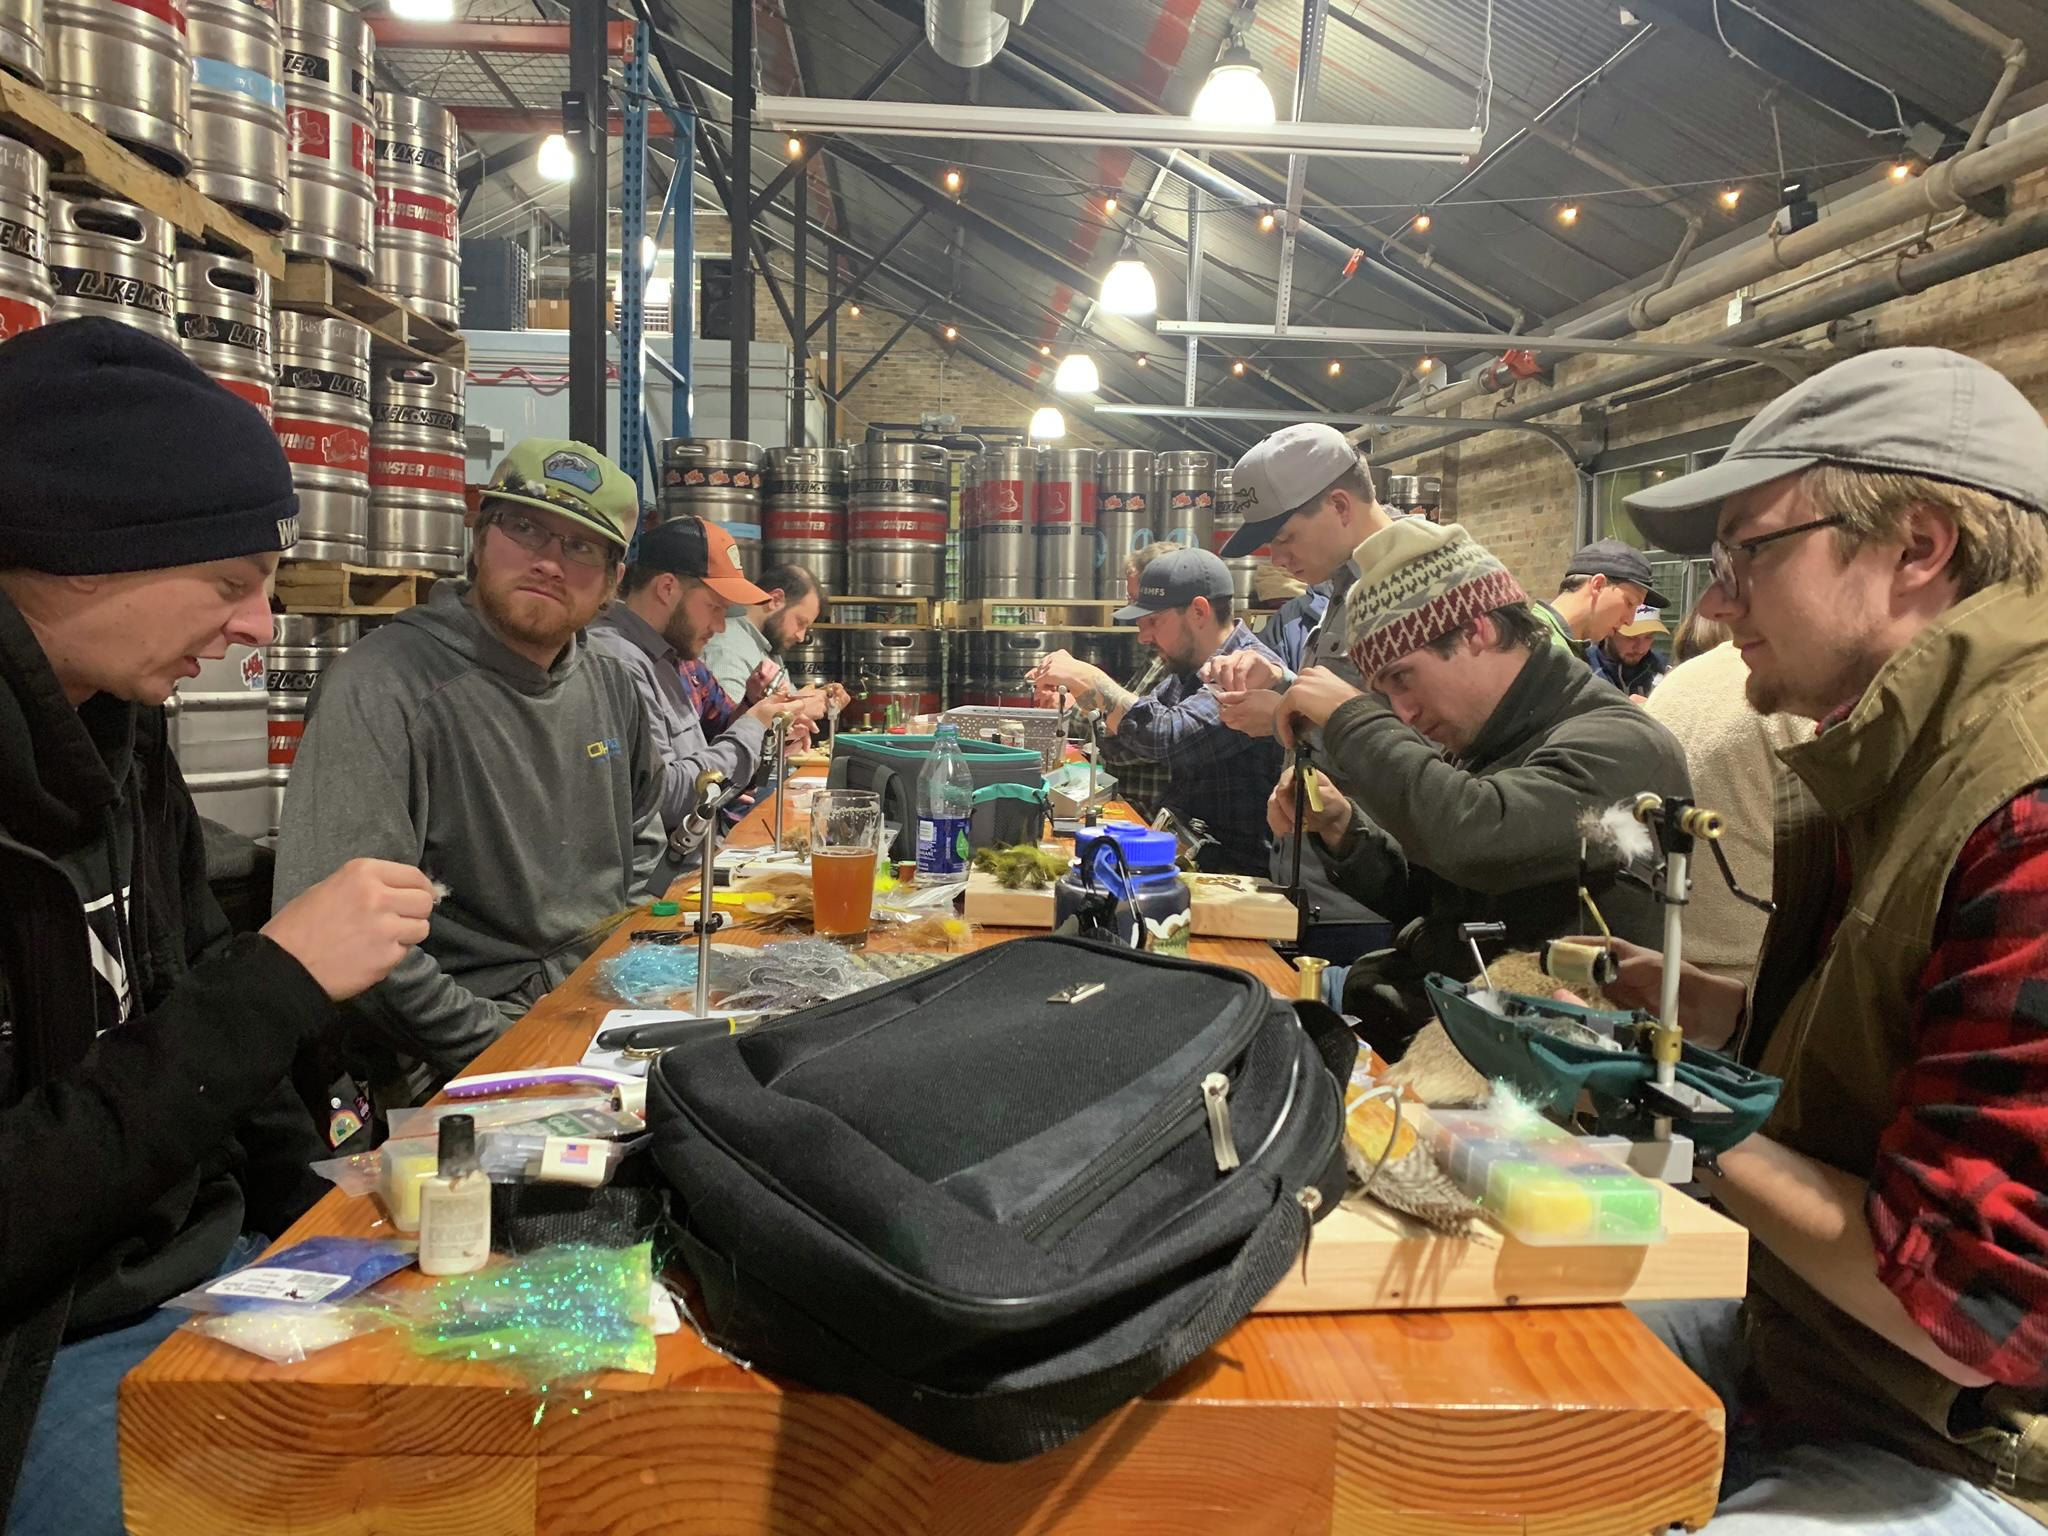 From October to April, fly-tying enthusiasts gather at Lake Monster Brewing in St. Paul on the first and third Tuesday of the month. Steve Hoffman / Forum News Service